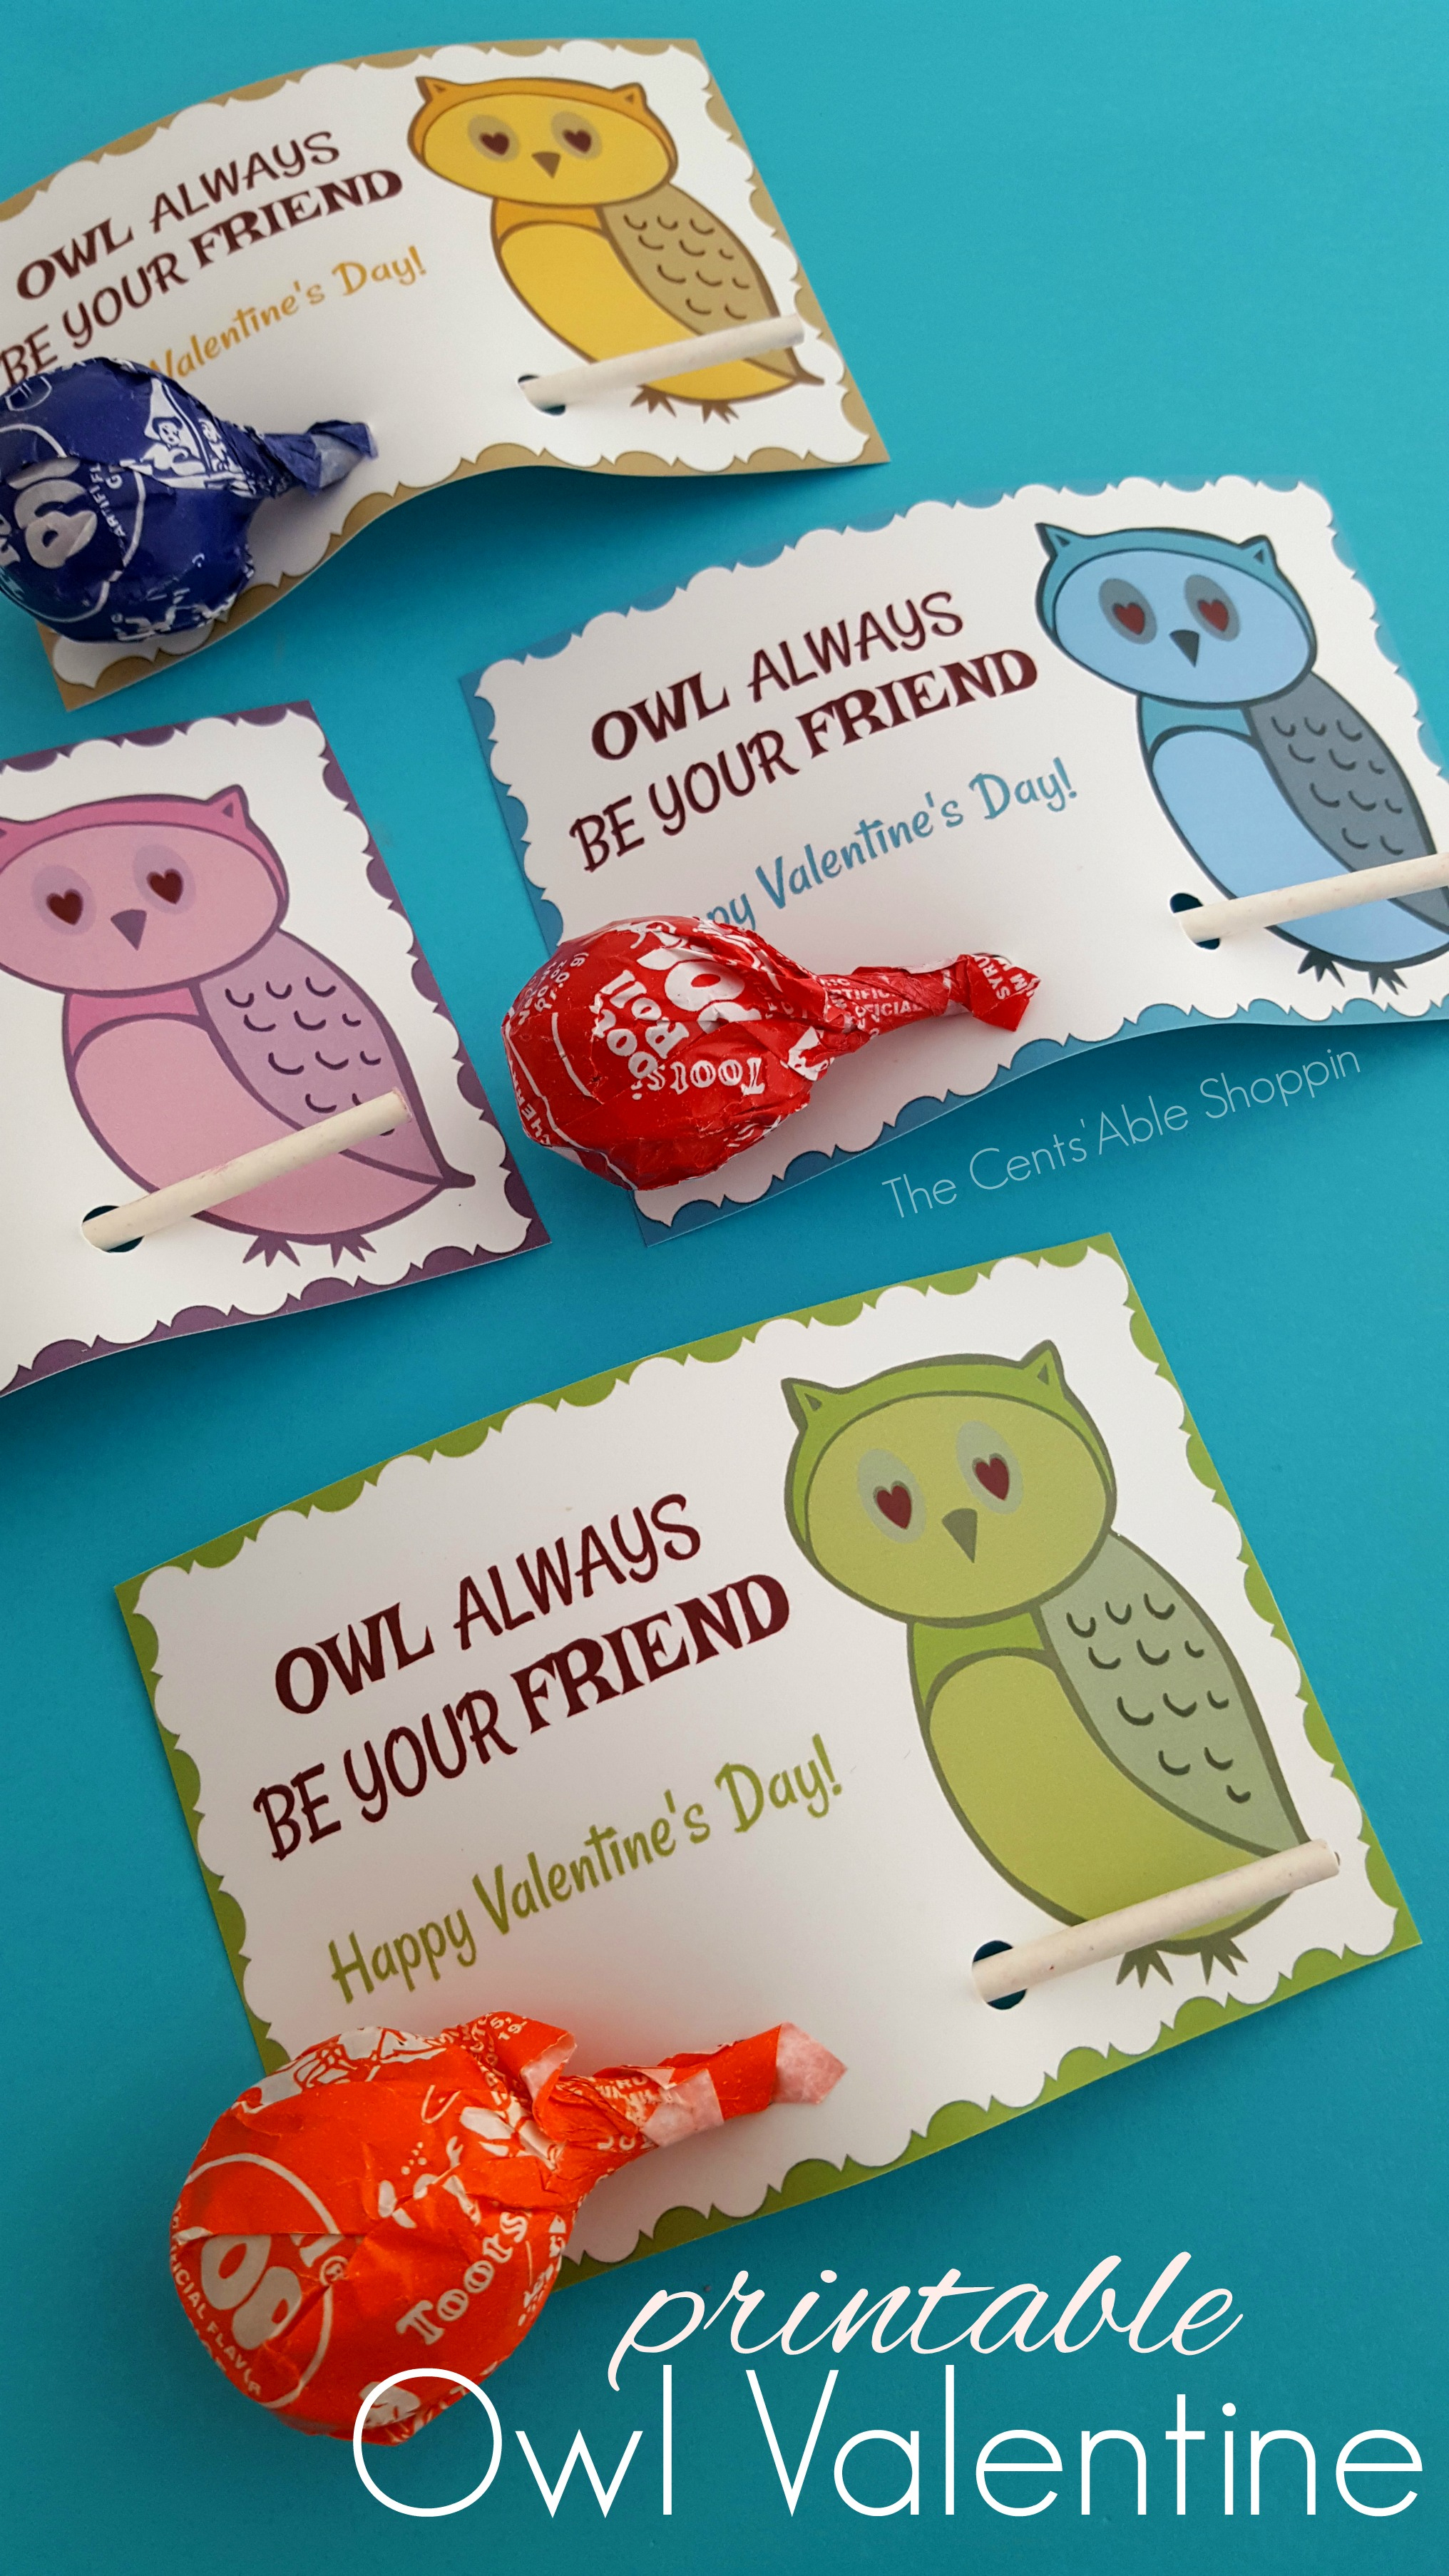 Owl Printable Valentine's Day Cards – The Centsable Shoppin - Free Printable Owl Valentine Cards